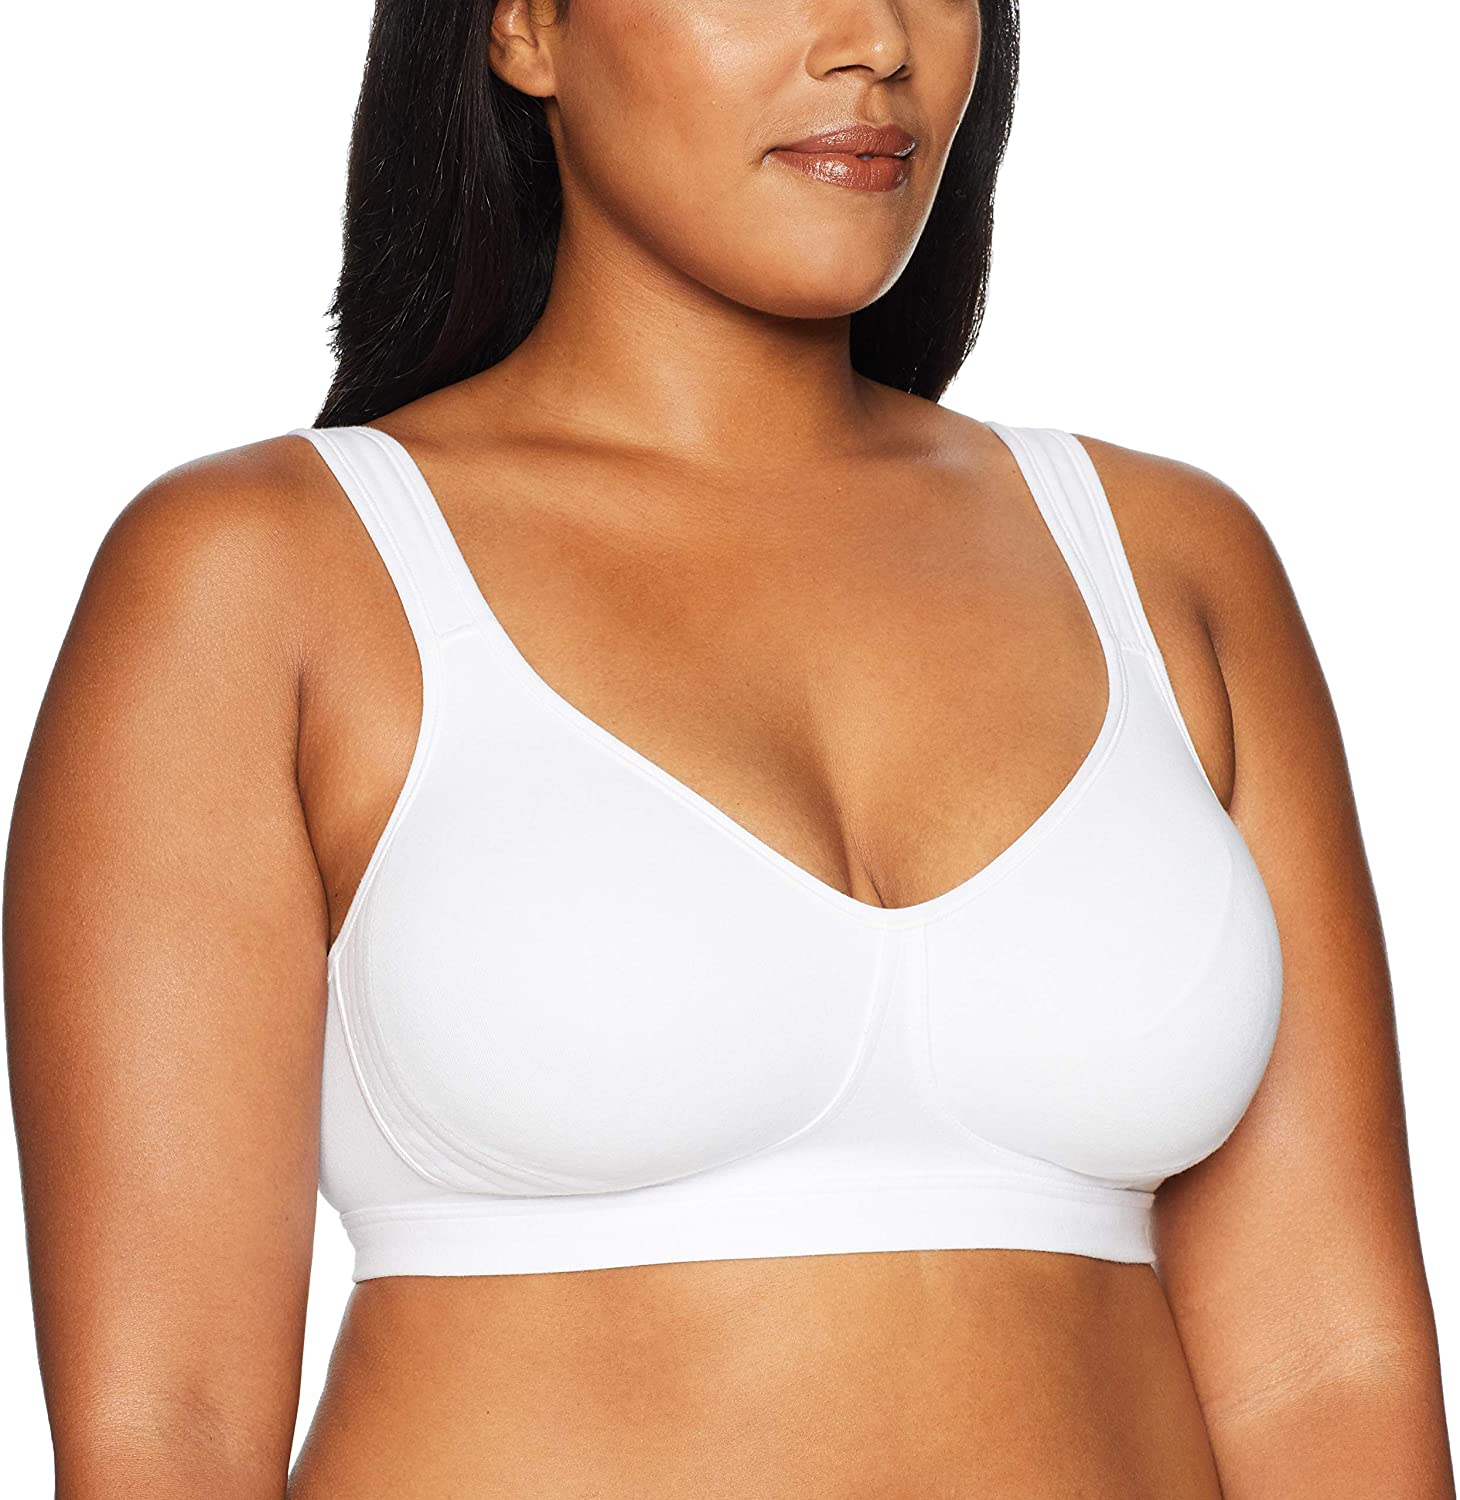 Playtex Women's 18 Hour Bra | yesicafashion.com